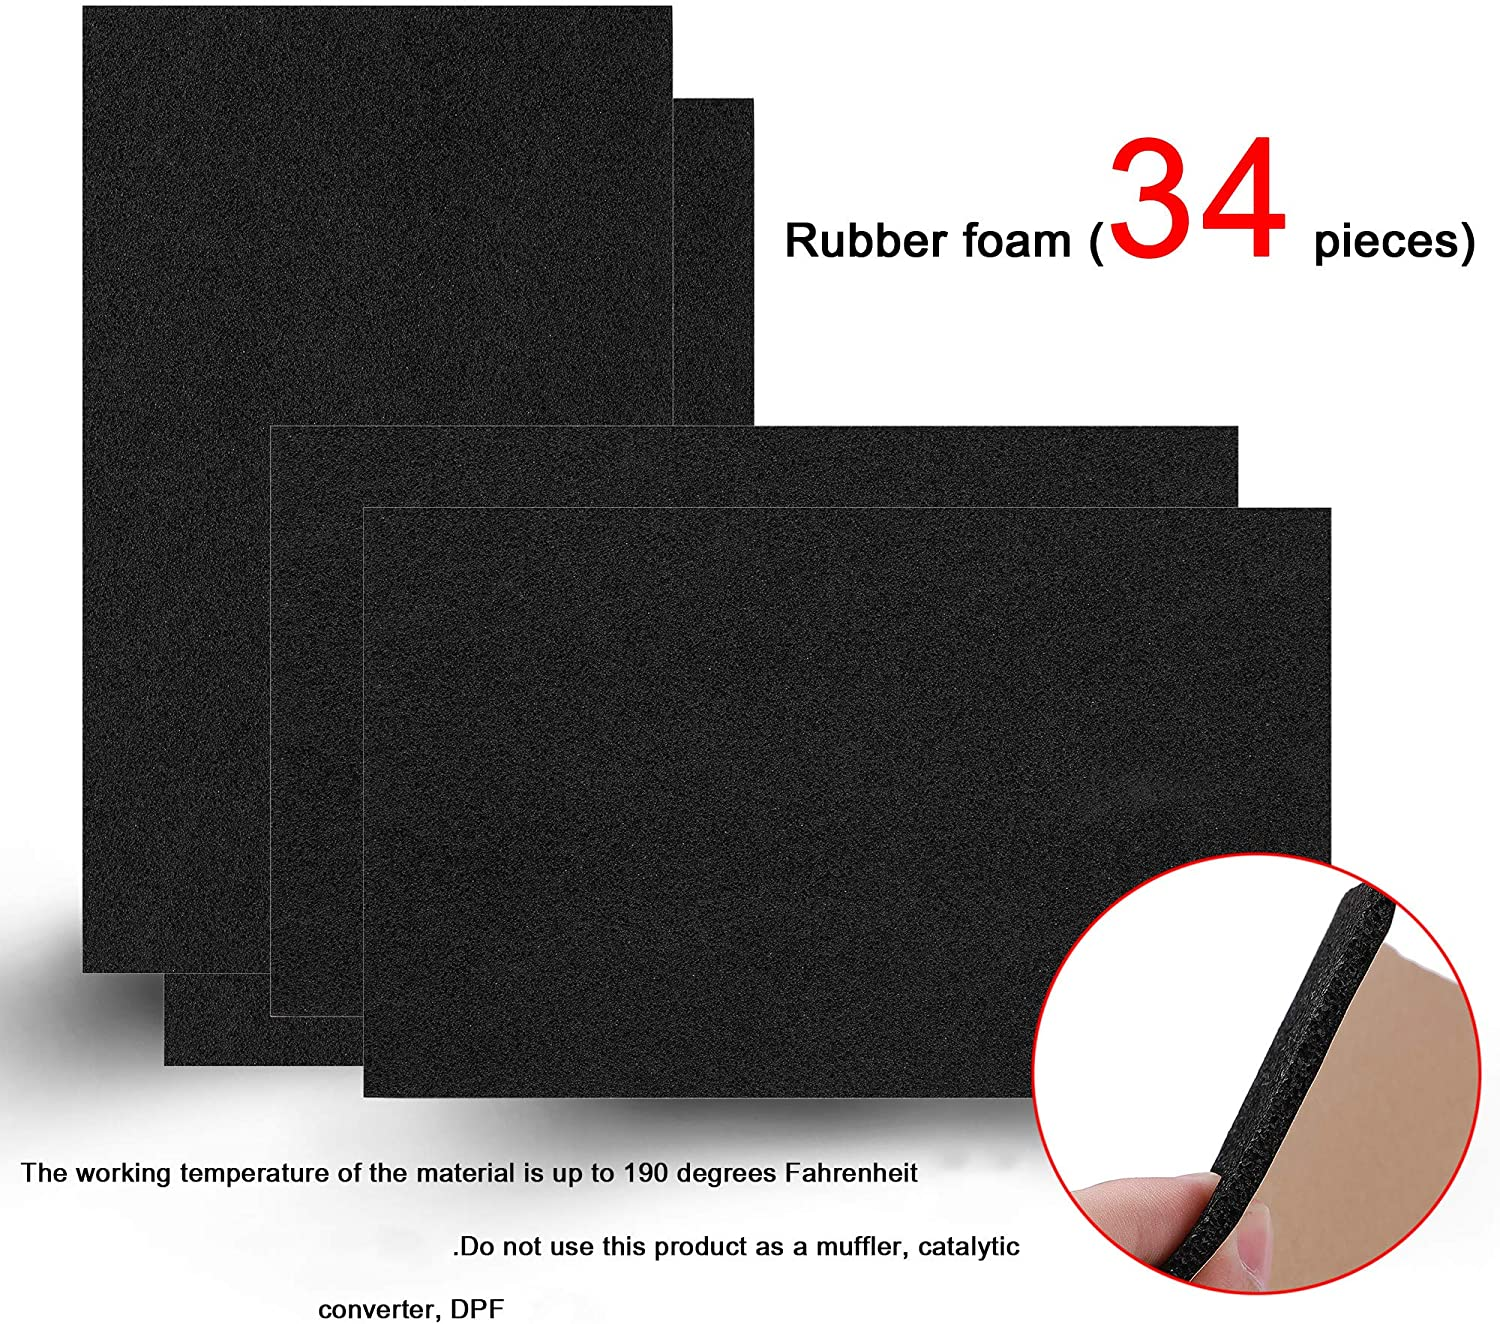 Shinehome 150 Mil 36 Sqft Sound Deadener Deadening Dampening Audio Noise Insulation Heat Insulation Mat Material Self Adhesive Rubber Waterproof Soundproofing Foam Panel Automotive Amazon Com